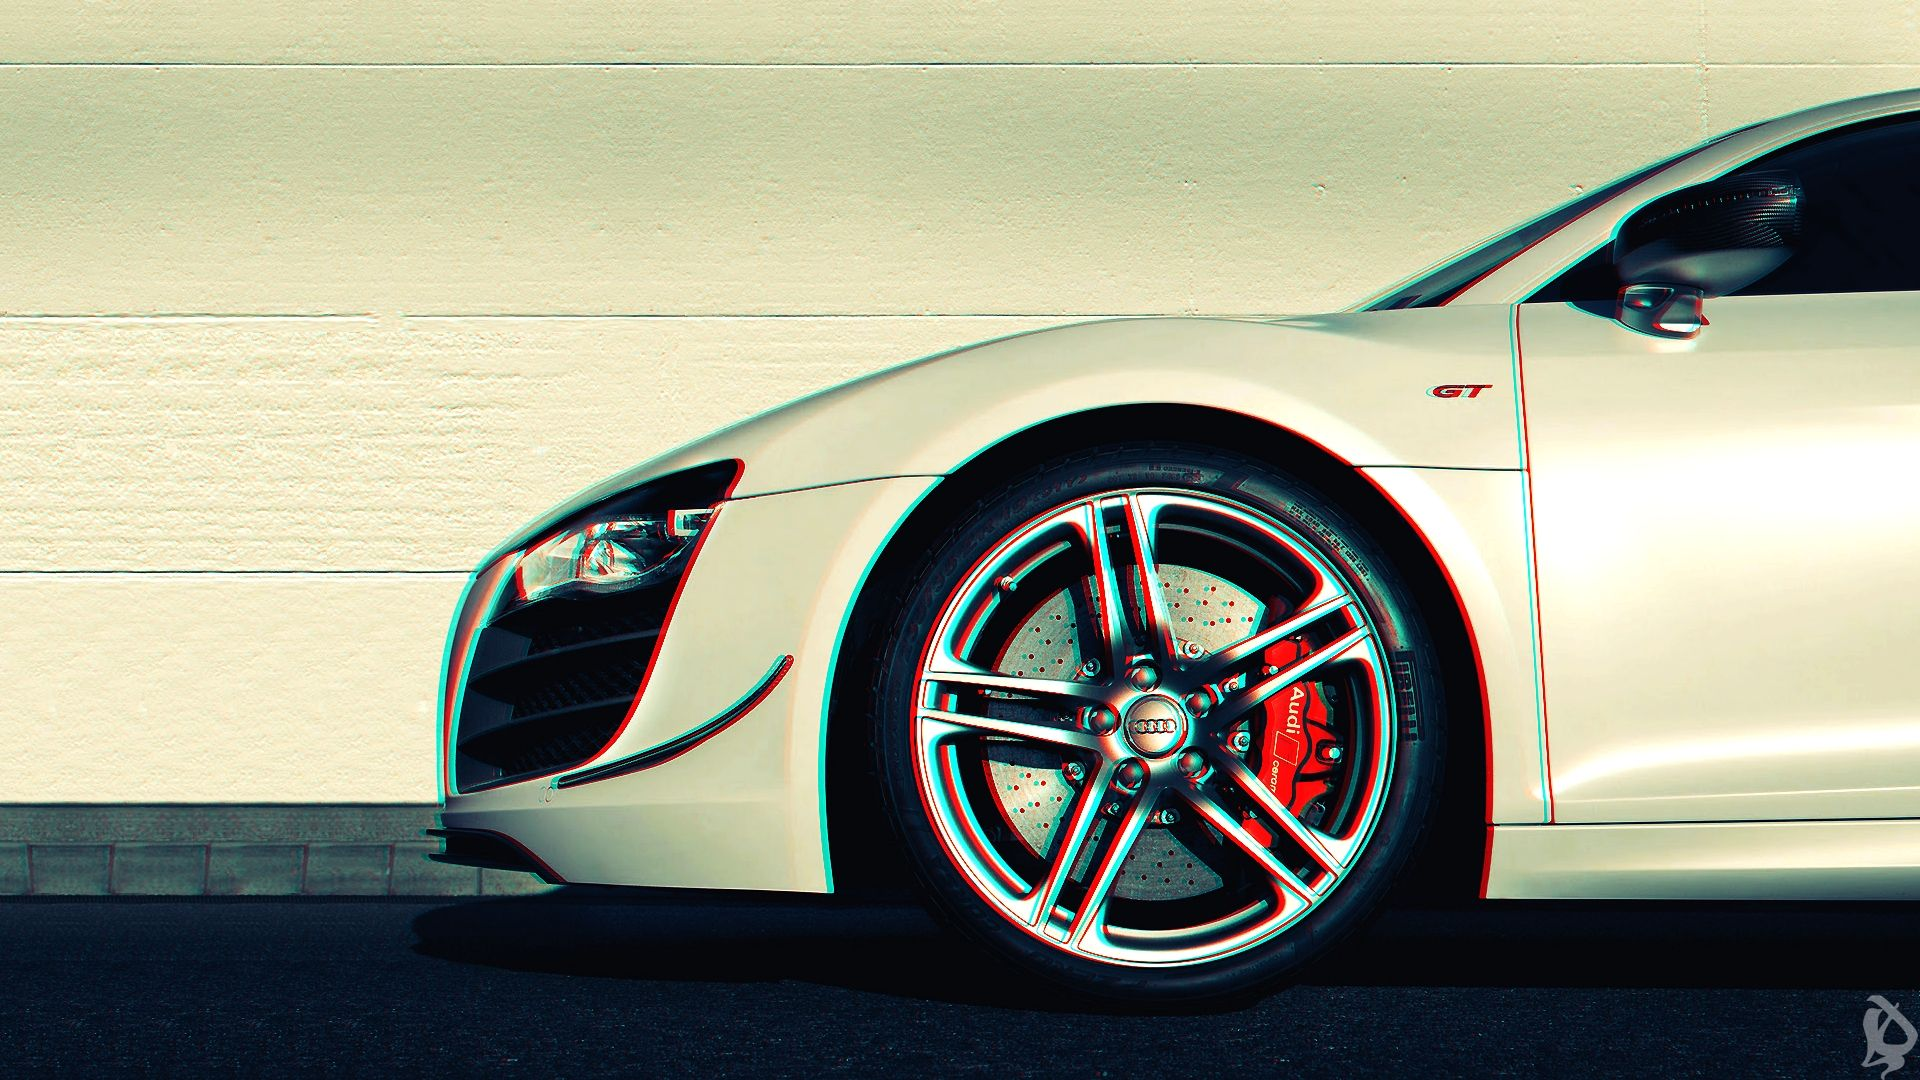 Download Wallpaper 1920x1080 Audi R8, Anaglyph, 3d, Car Full HD